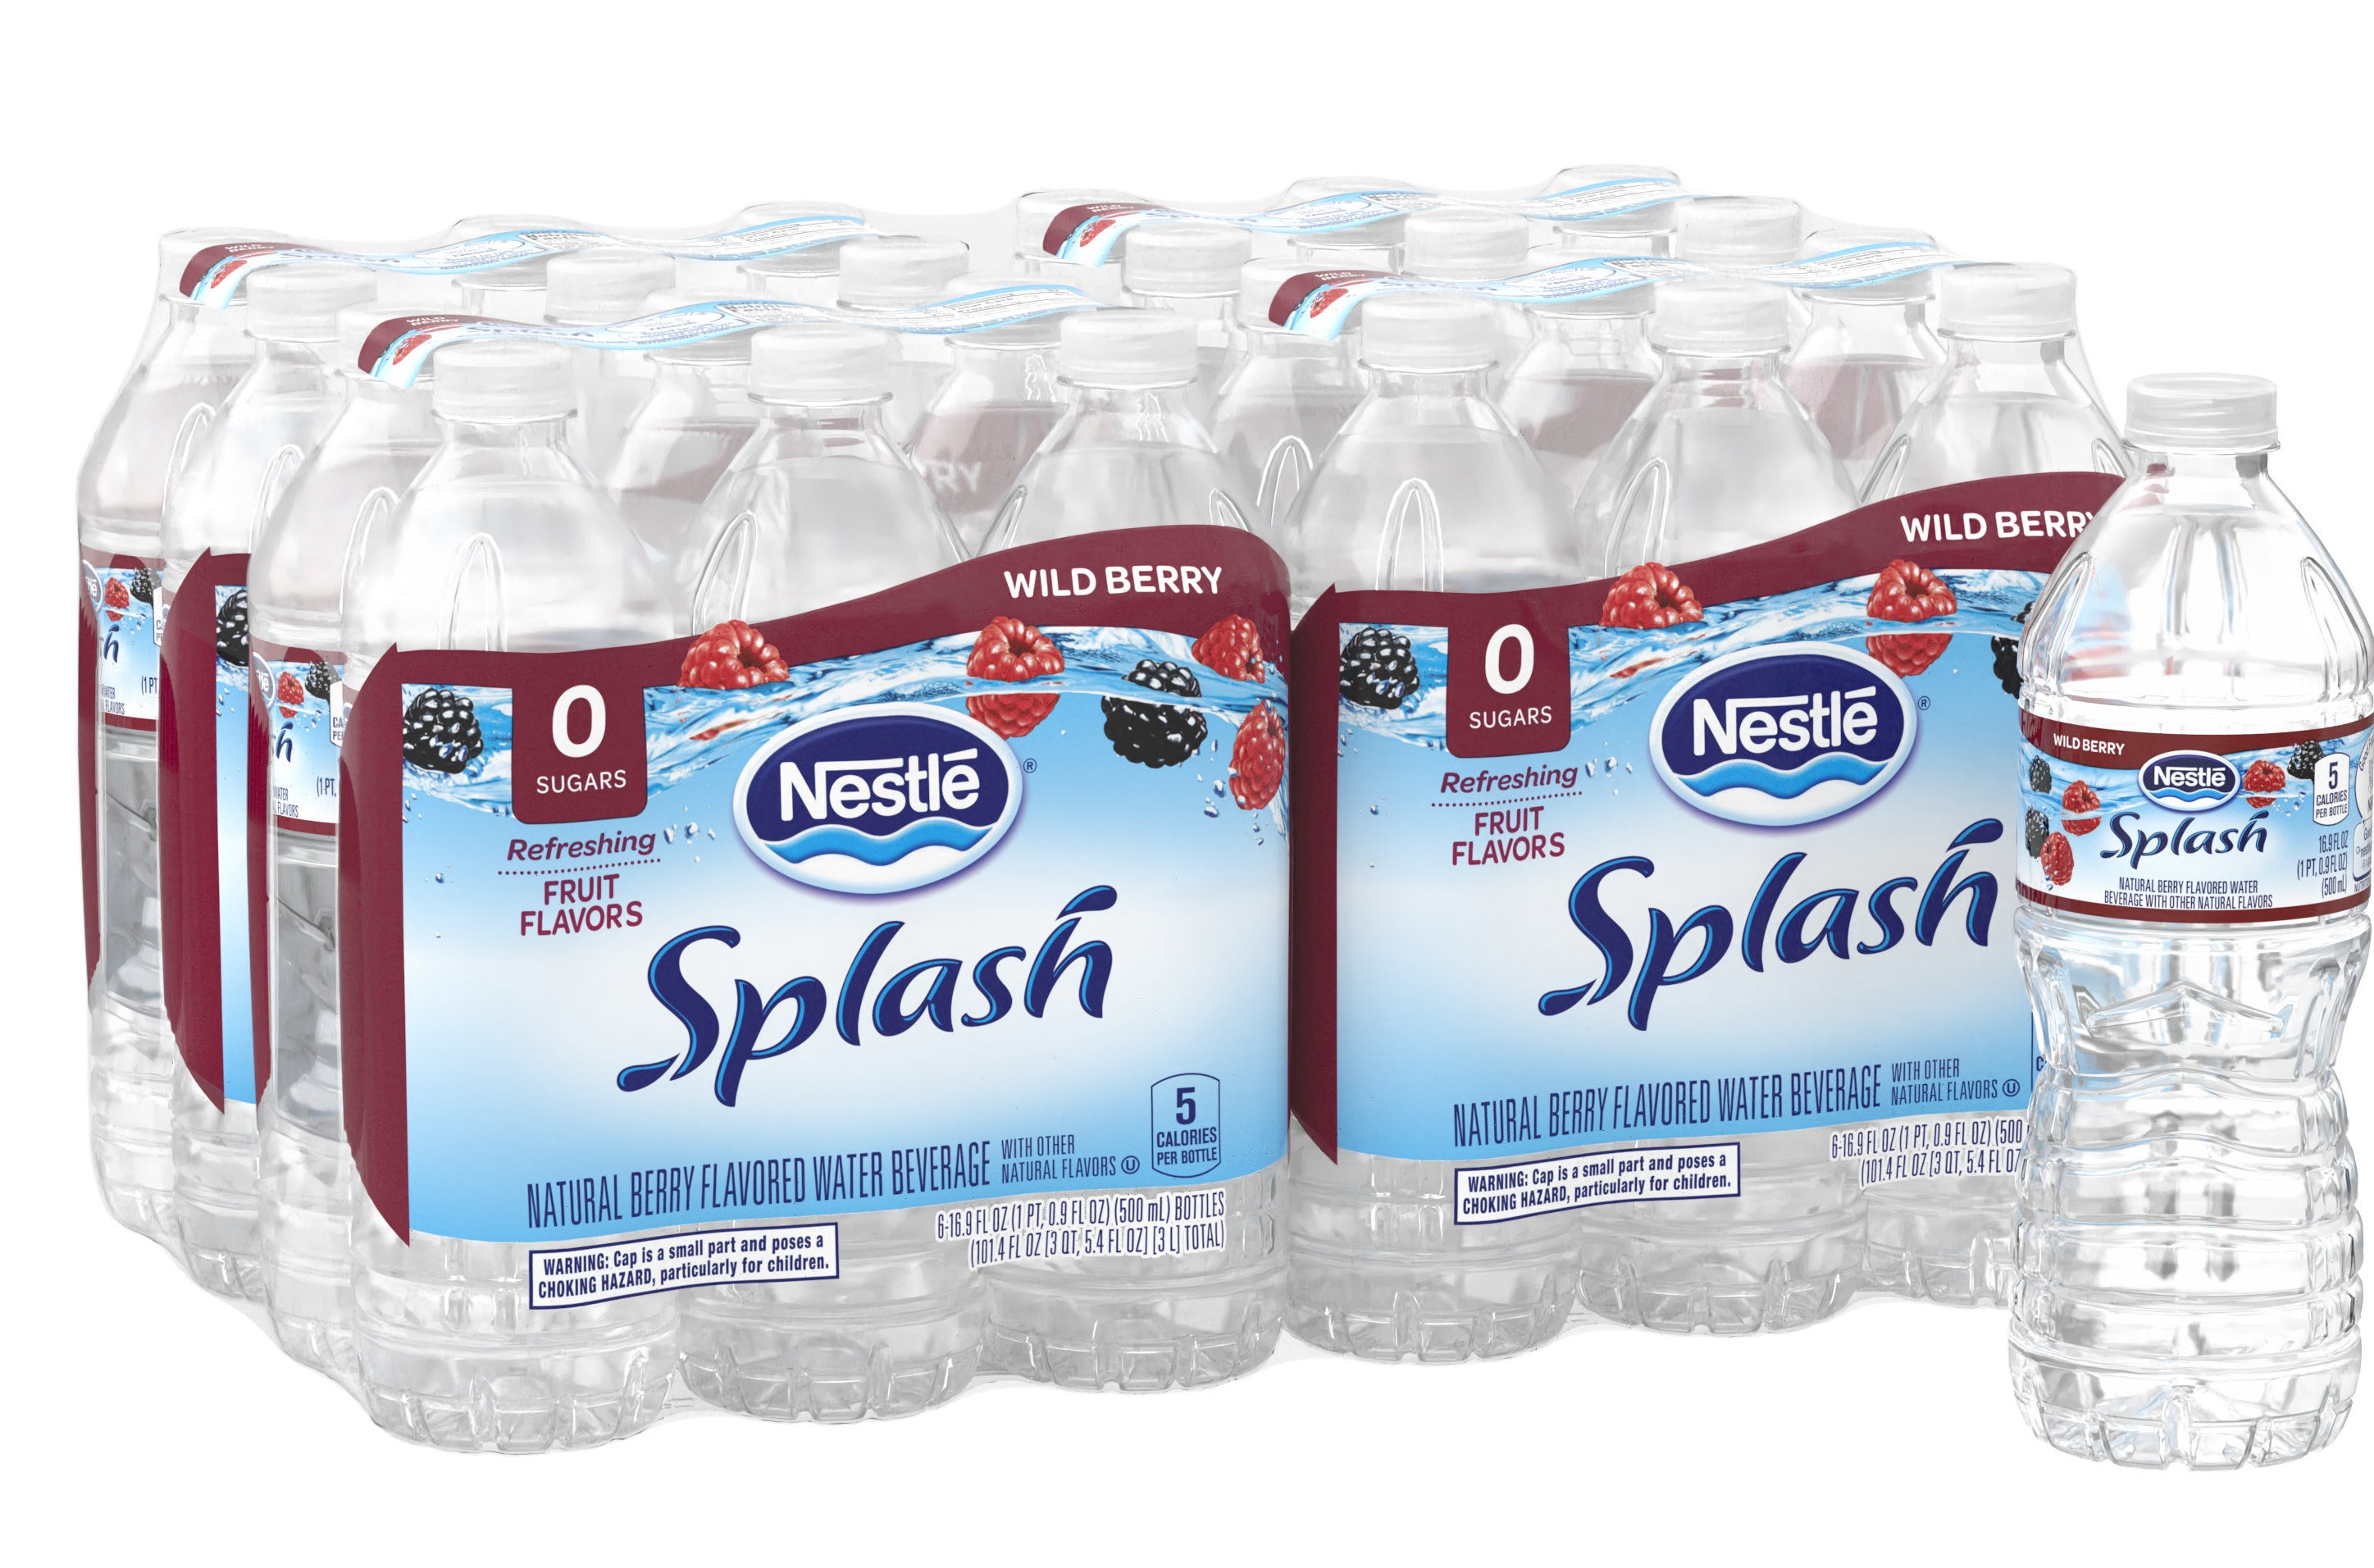 The 24-pack case of water